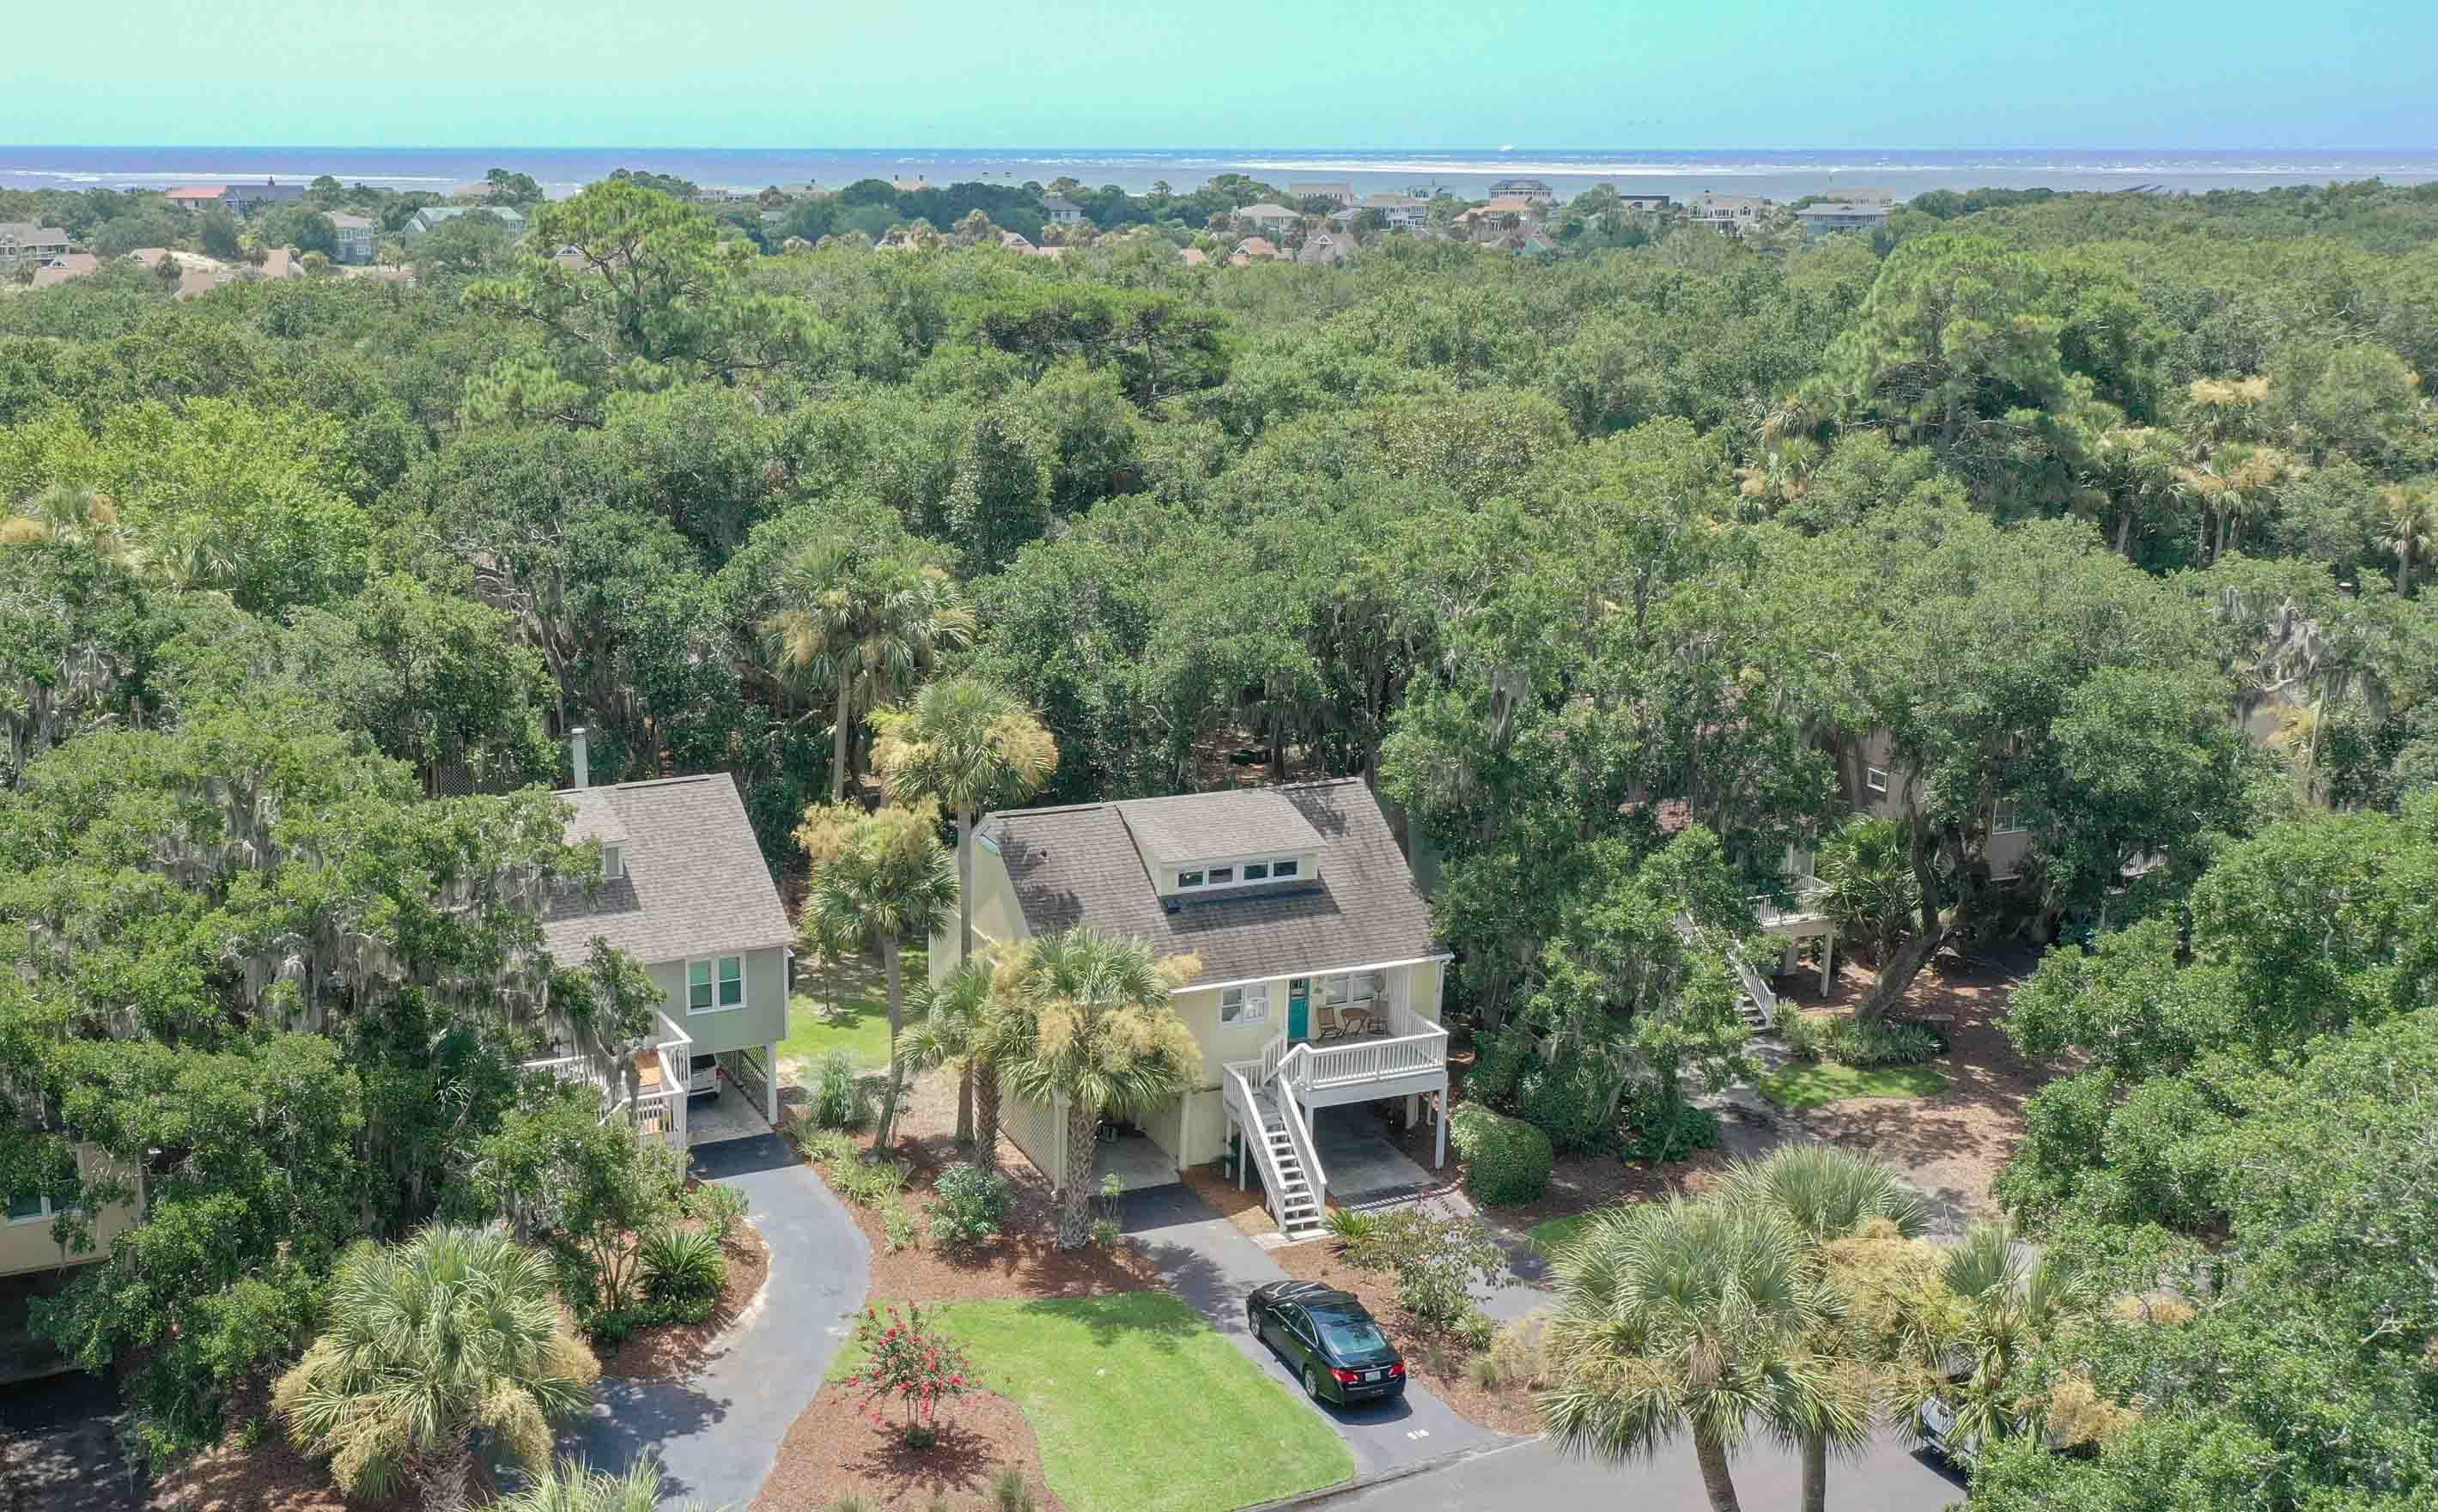 516 Cobby Creek Lane Seabrook Island, SC 29455